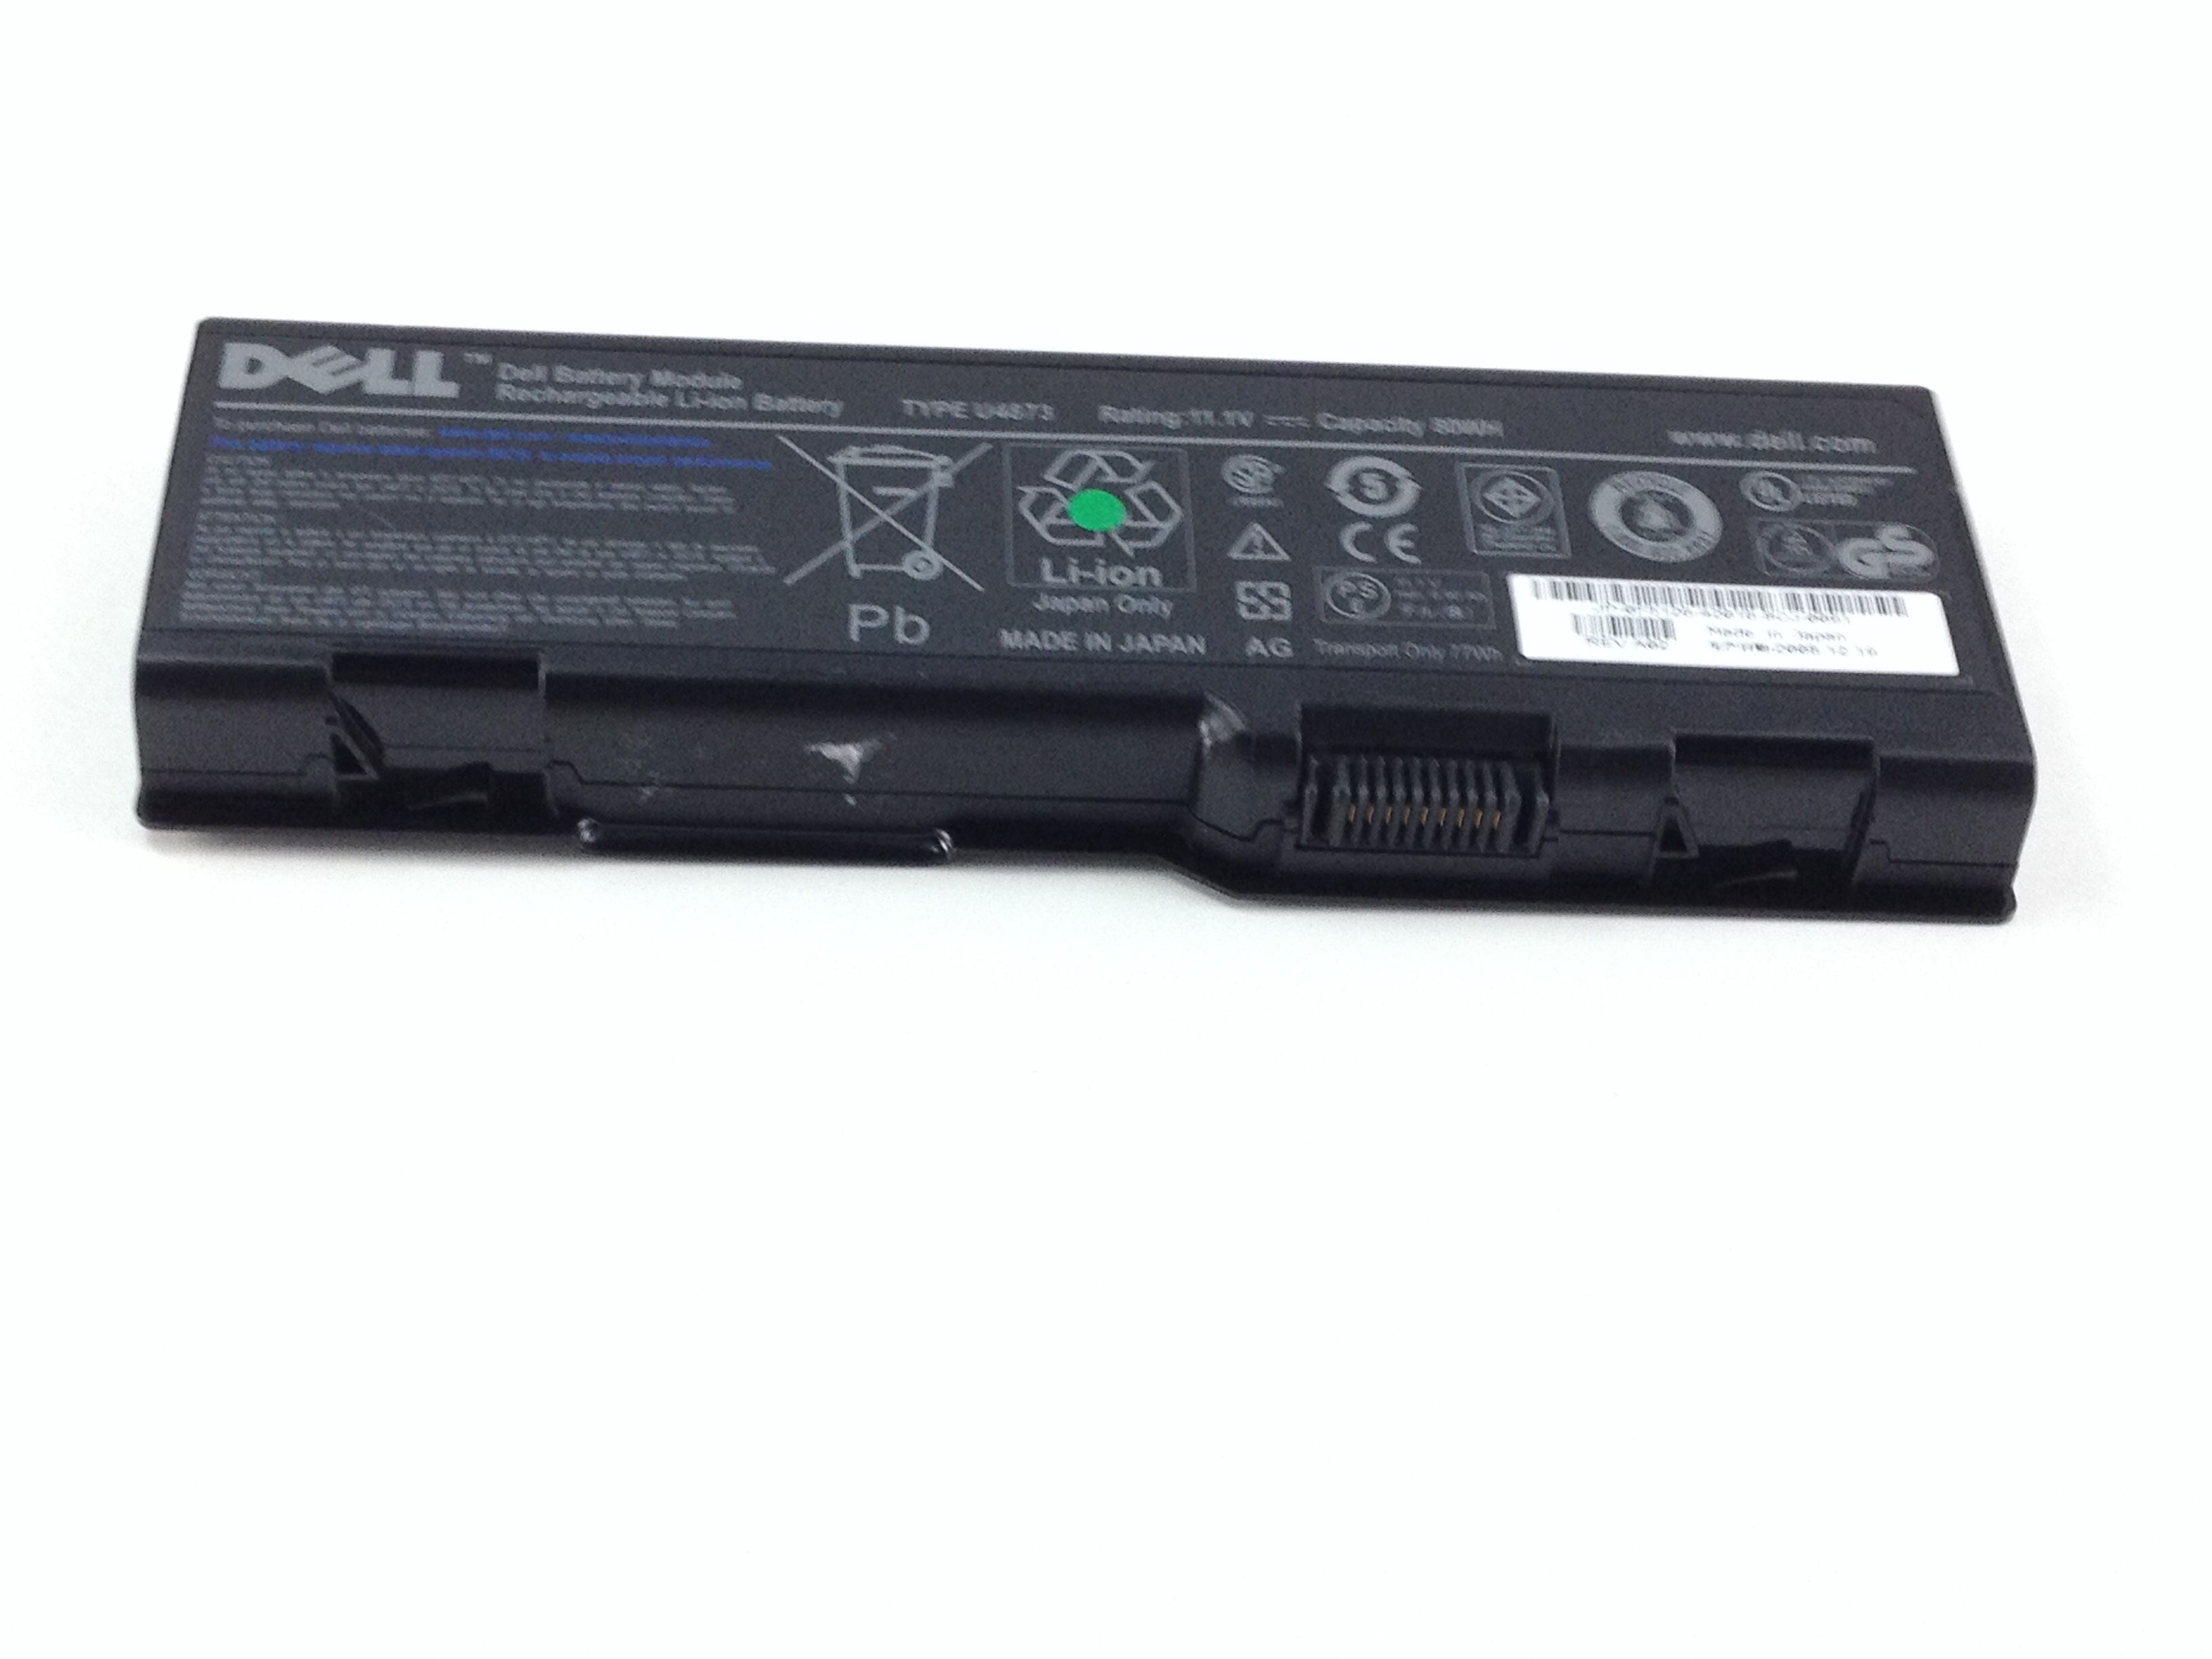 Dell M90 11.1V 9-Cell Rechargeable Li-Ion Battery (F5126)